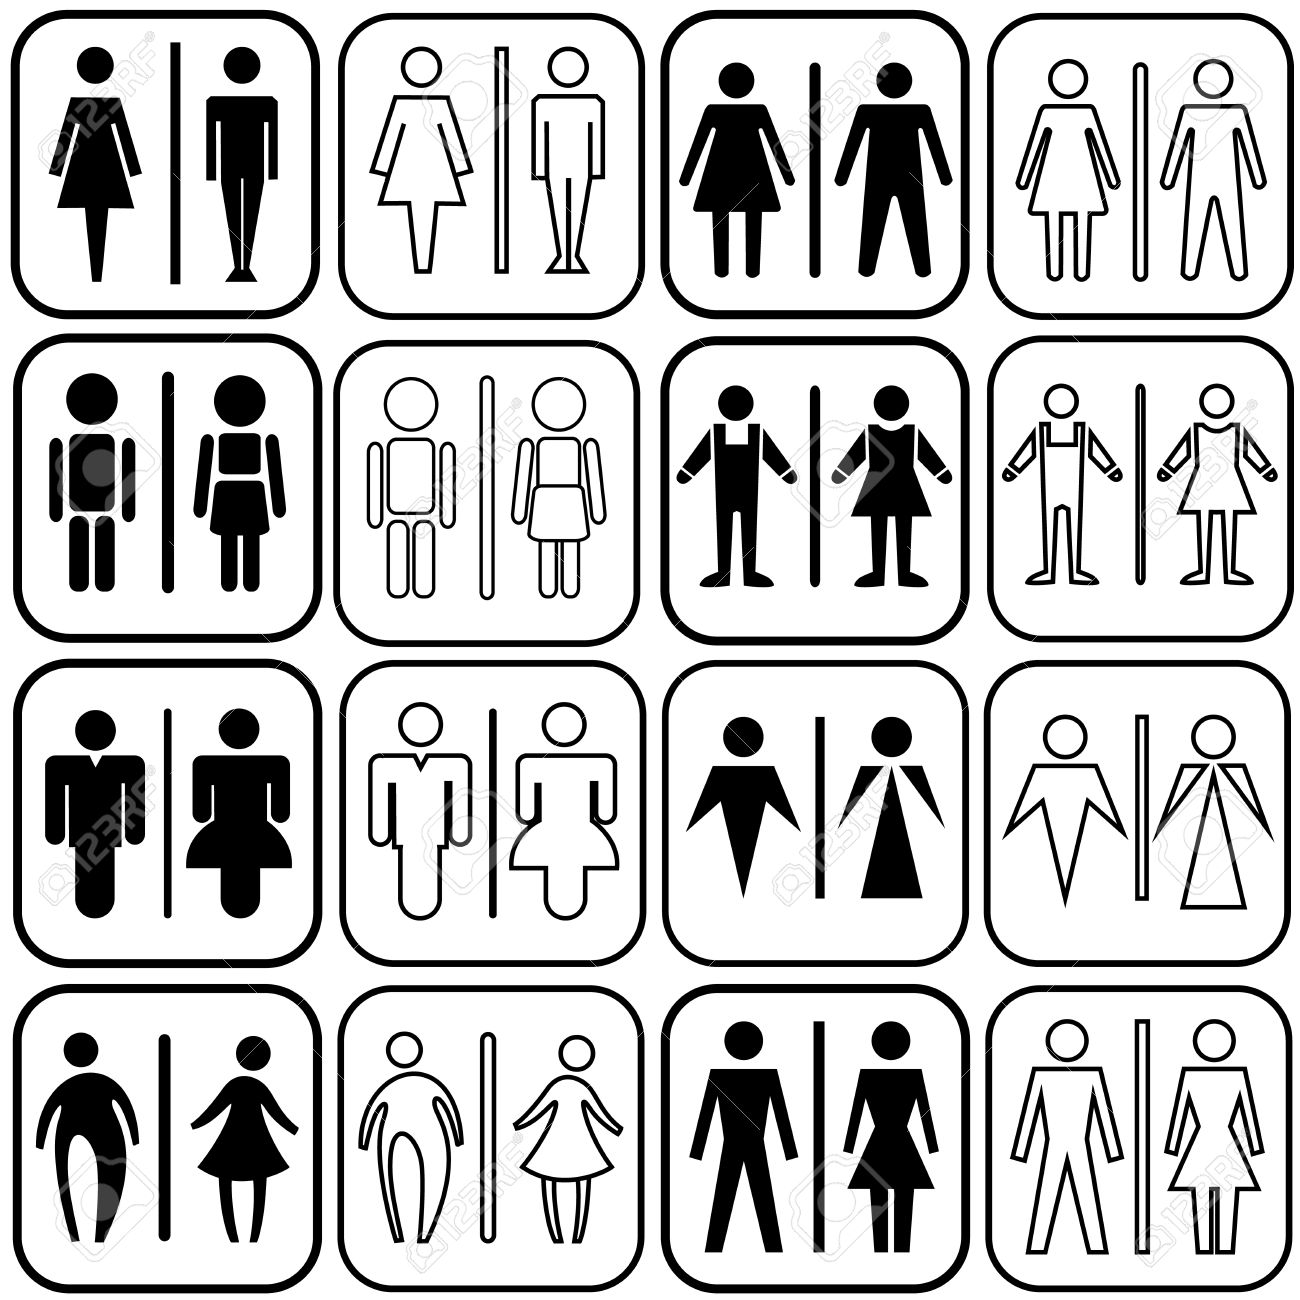 men s bathroom sign vector. Modern Style Of Toilet Sign With Men, Women In Art Design, Vector Set Men S Bathroom N